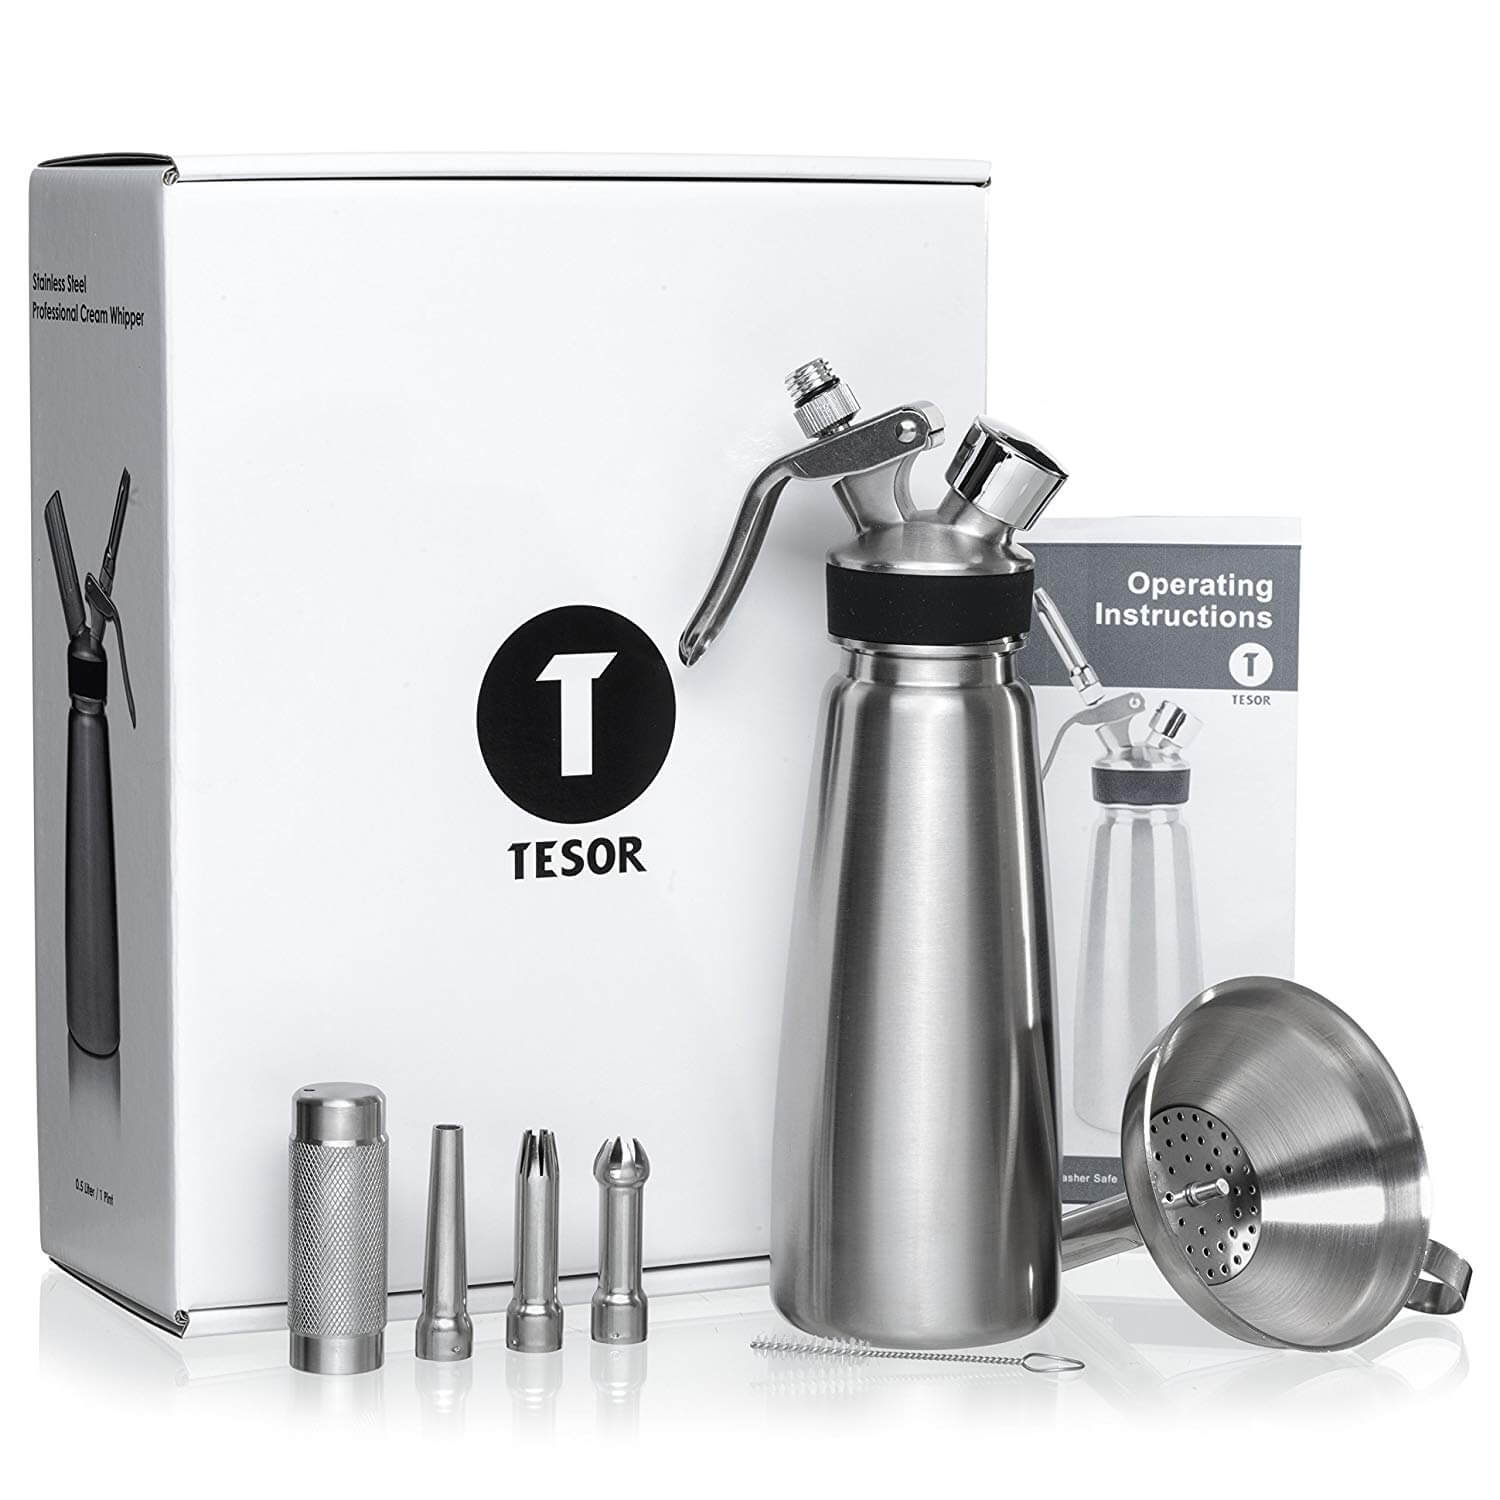 Tesor Stainless Steel Whipped Cream dispenser